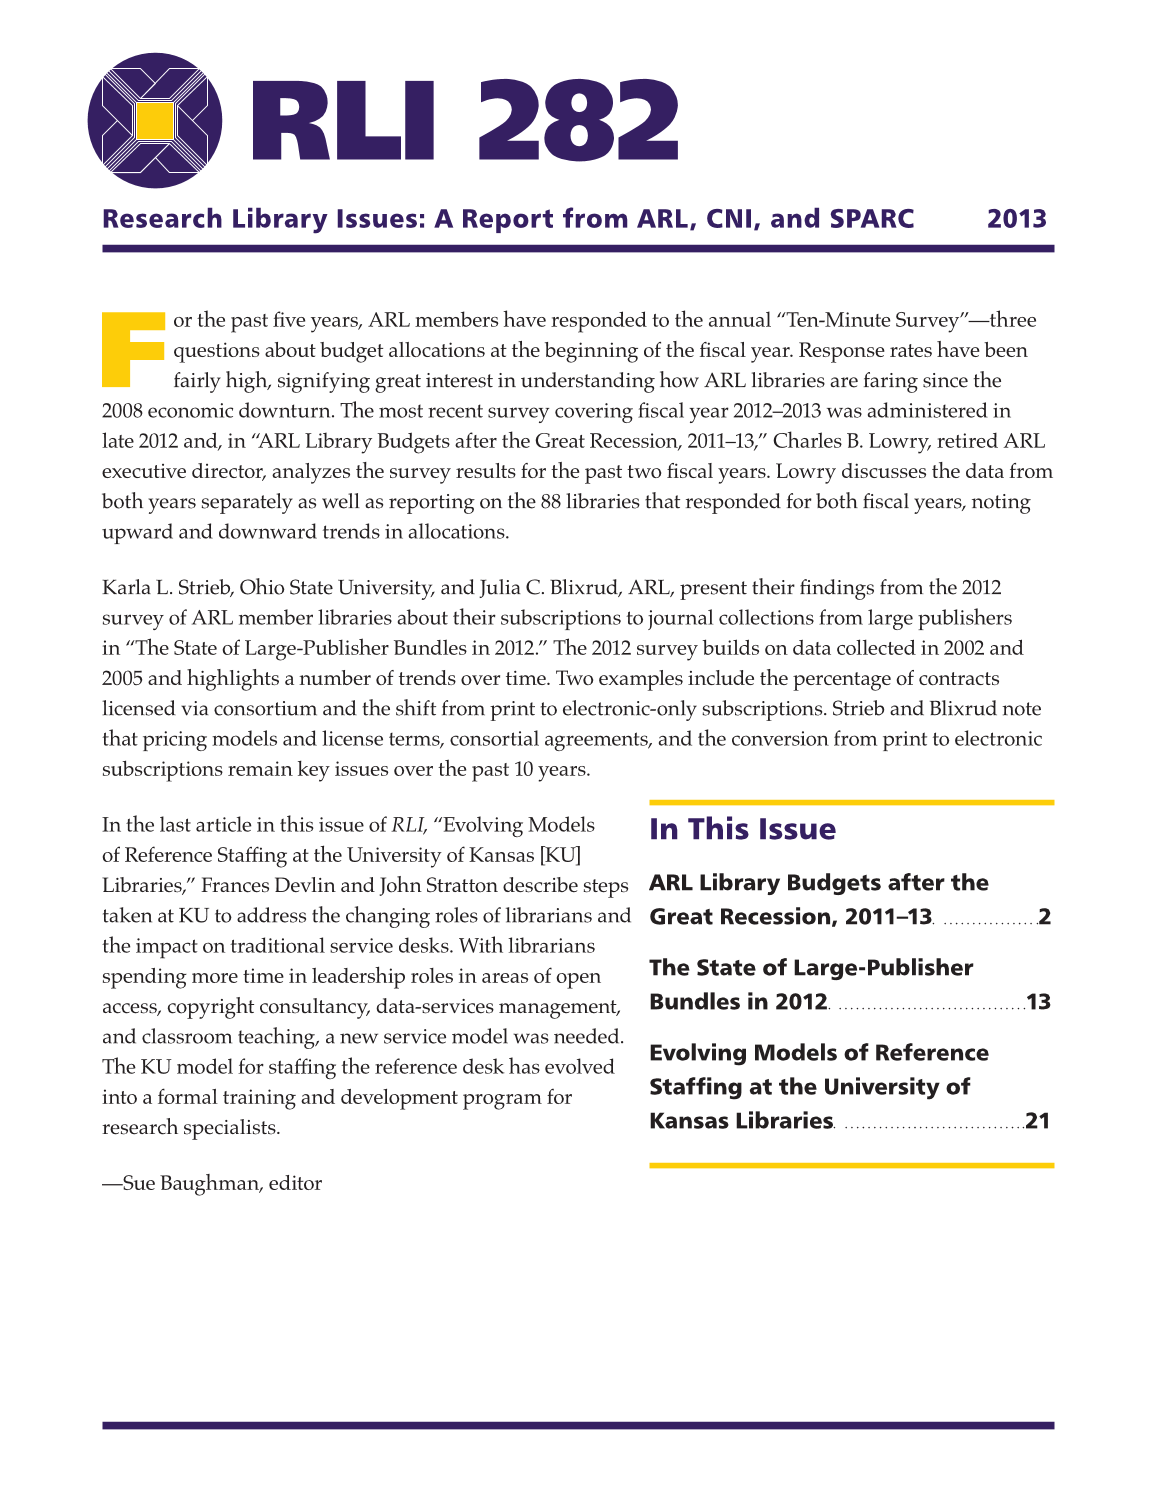 Research Library Issues, no. 282 (Spring 2013): Pre-pub of